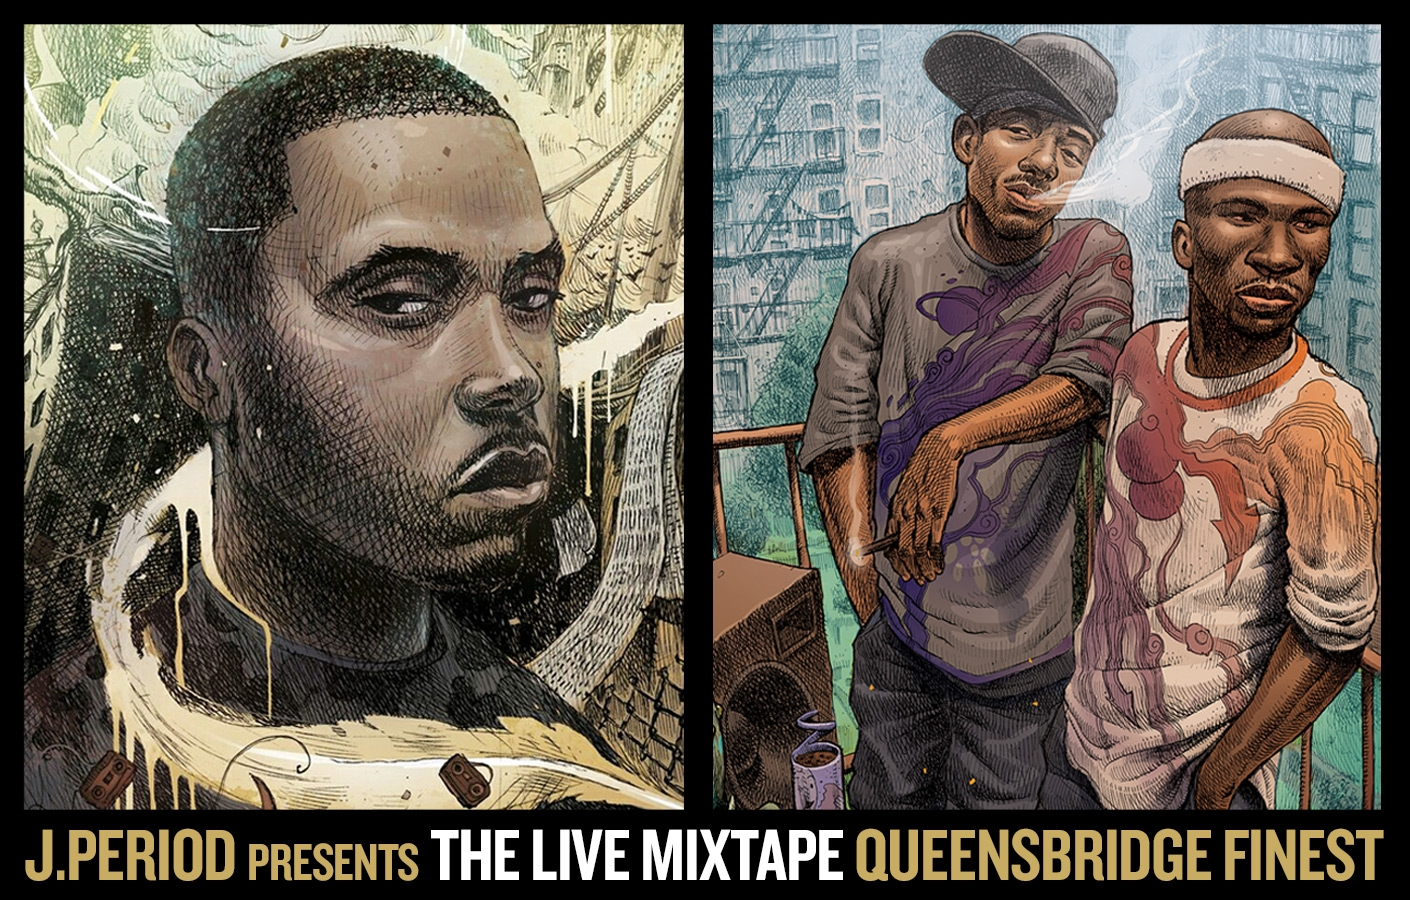 THE LIVE MIXTAPE: QUEENSBRIDGE FINEST